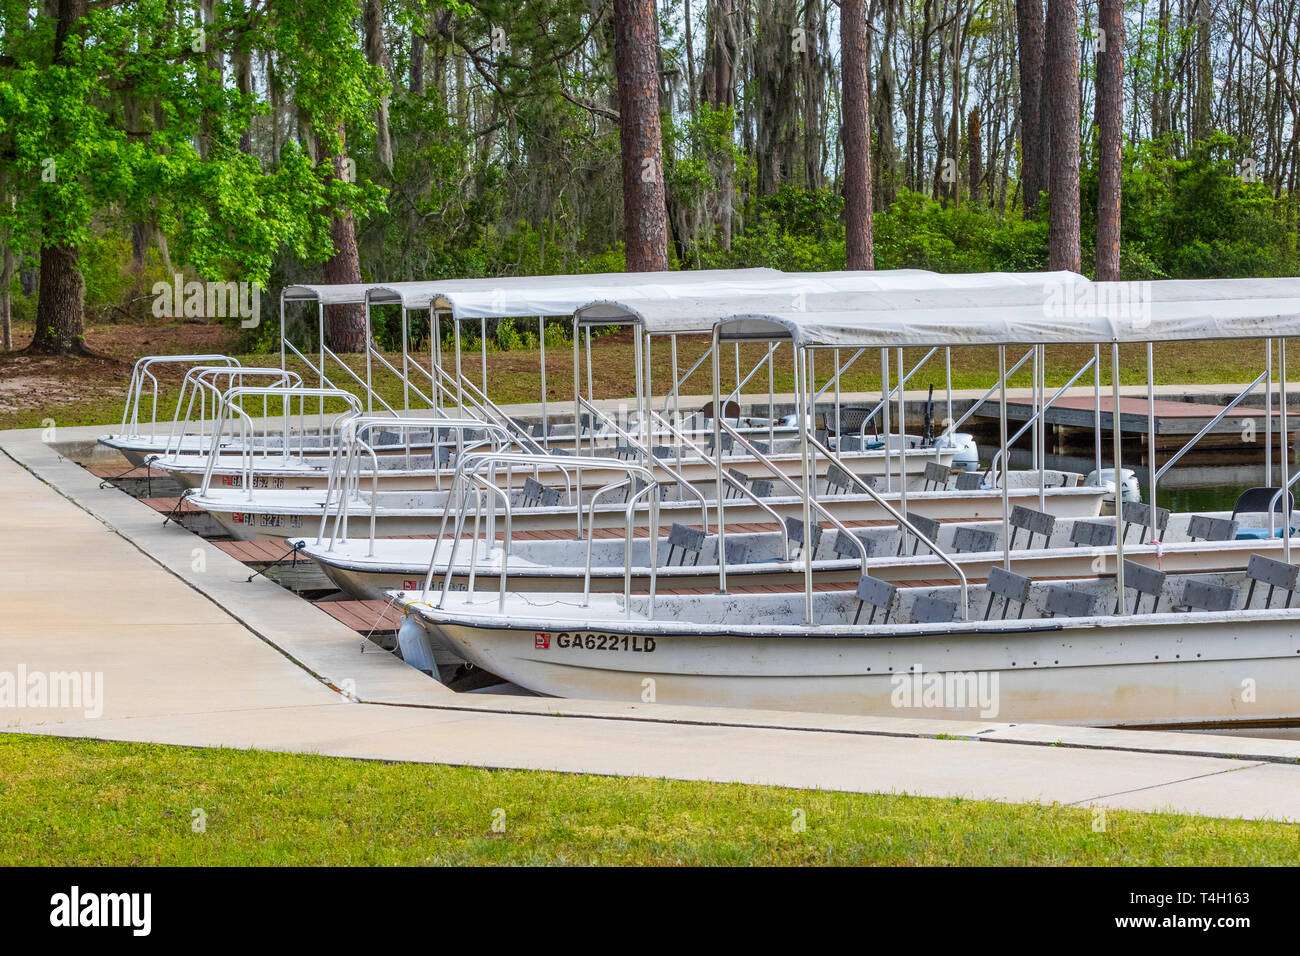 Okefenokee Swamp, Folkston, GA, USA-3/29/19: Tourist skiffs docked at the canal at eastern entrance to the swamp. Stock Photo